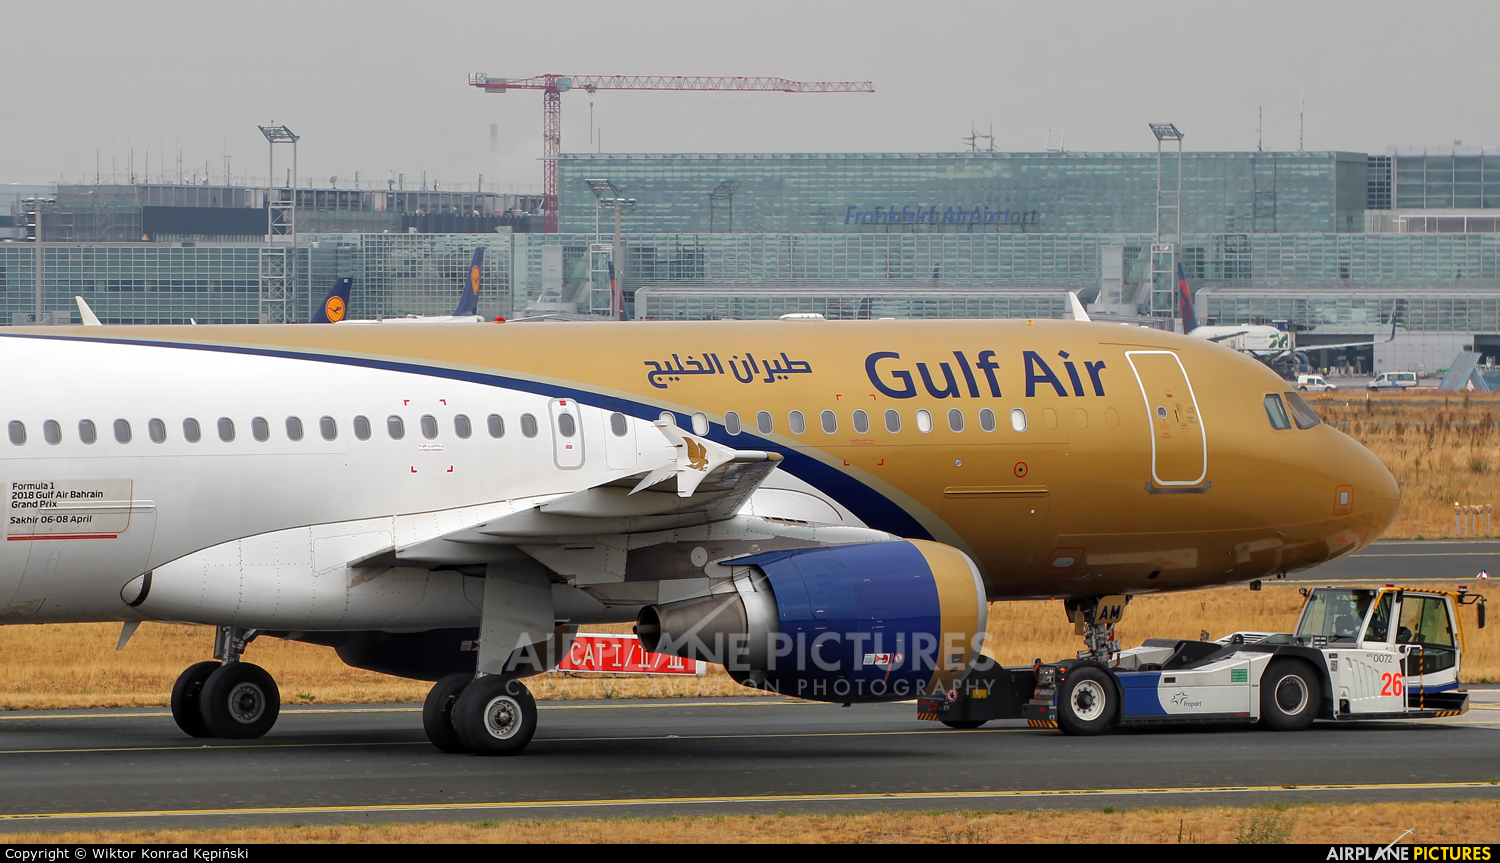 Gulf Air A9C-AM aircraft at Frankfurt